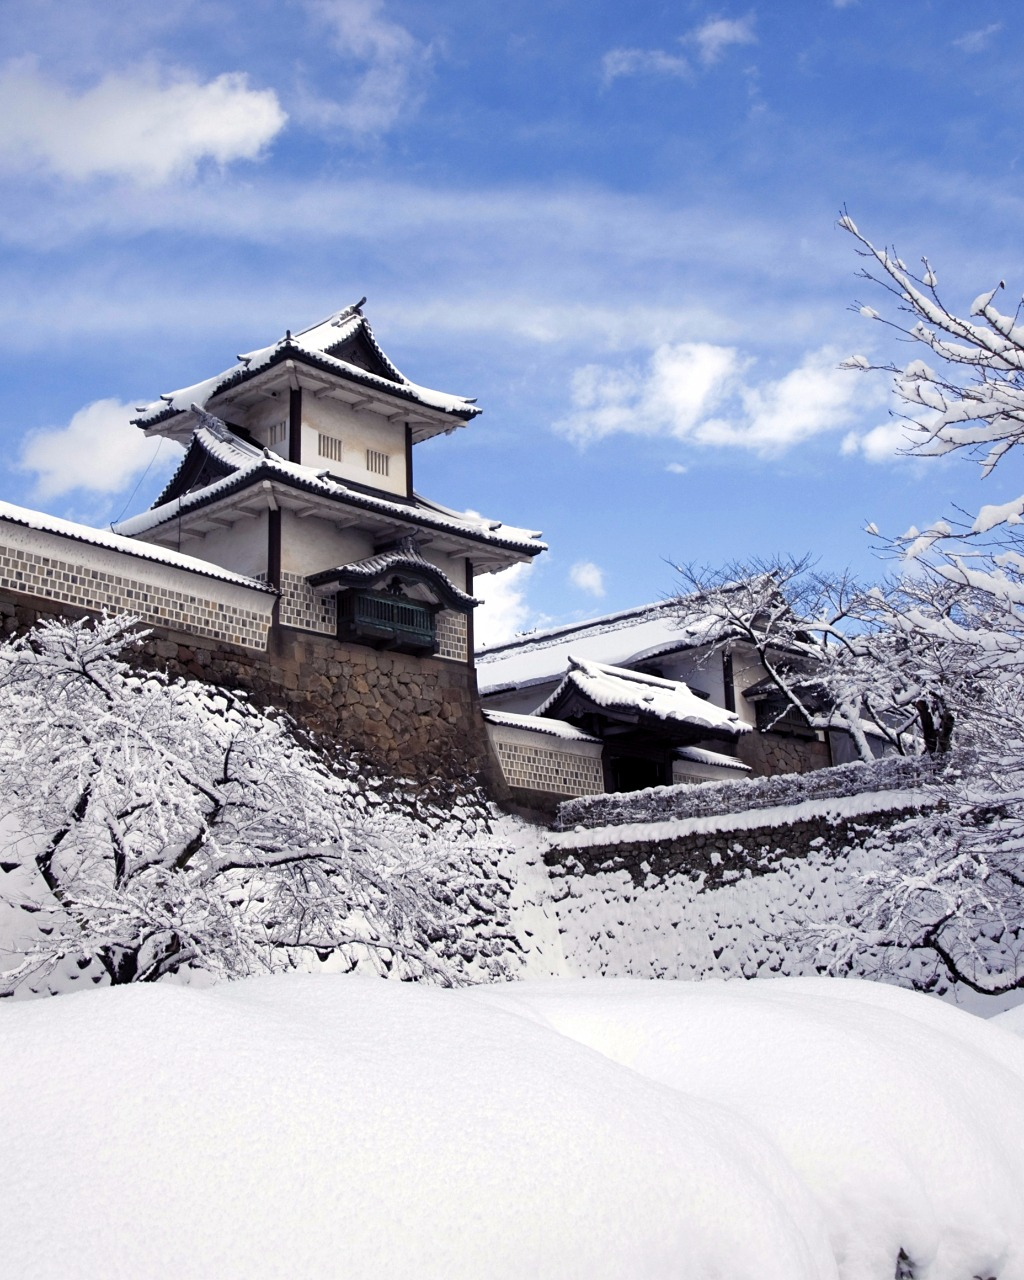 Japanese castle in winter city of Kanazawa